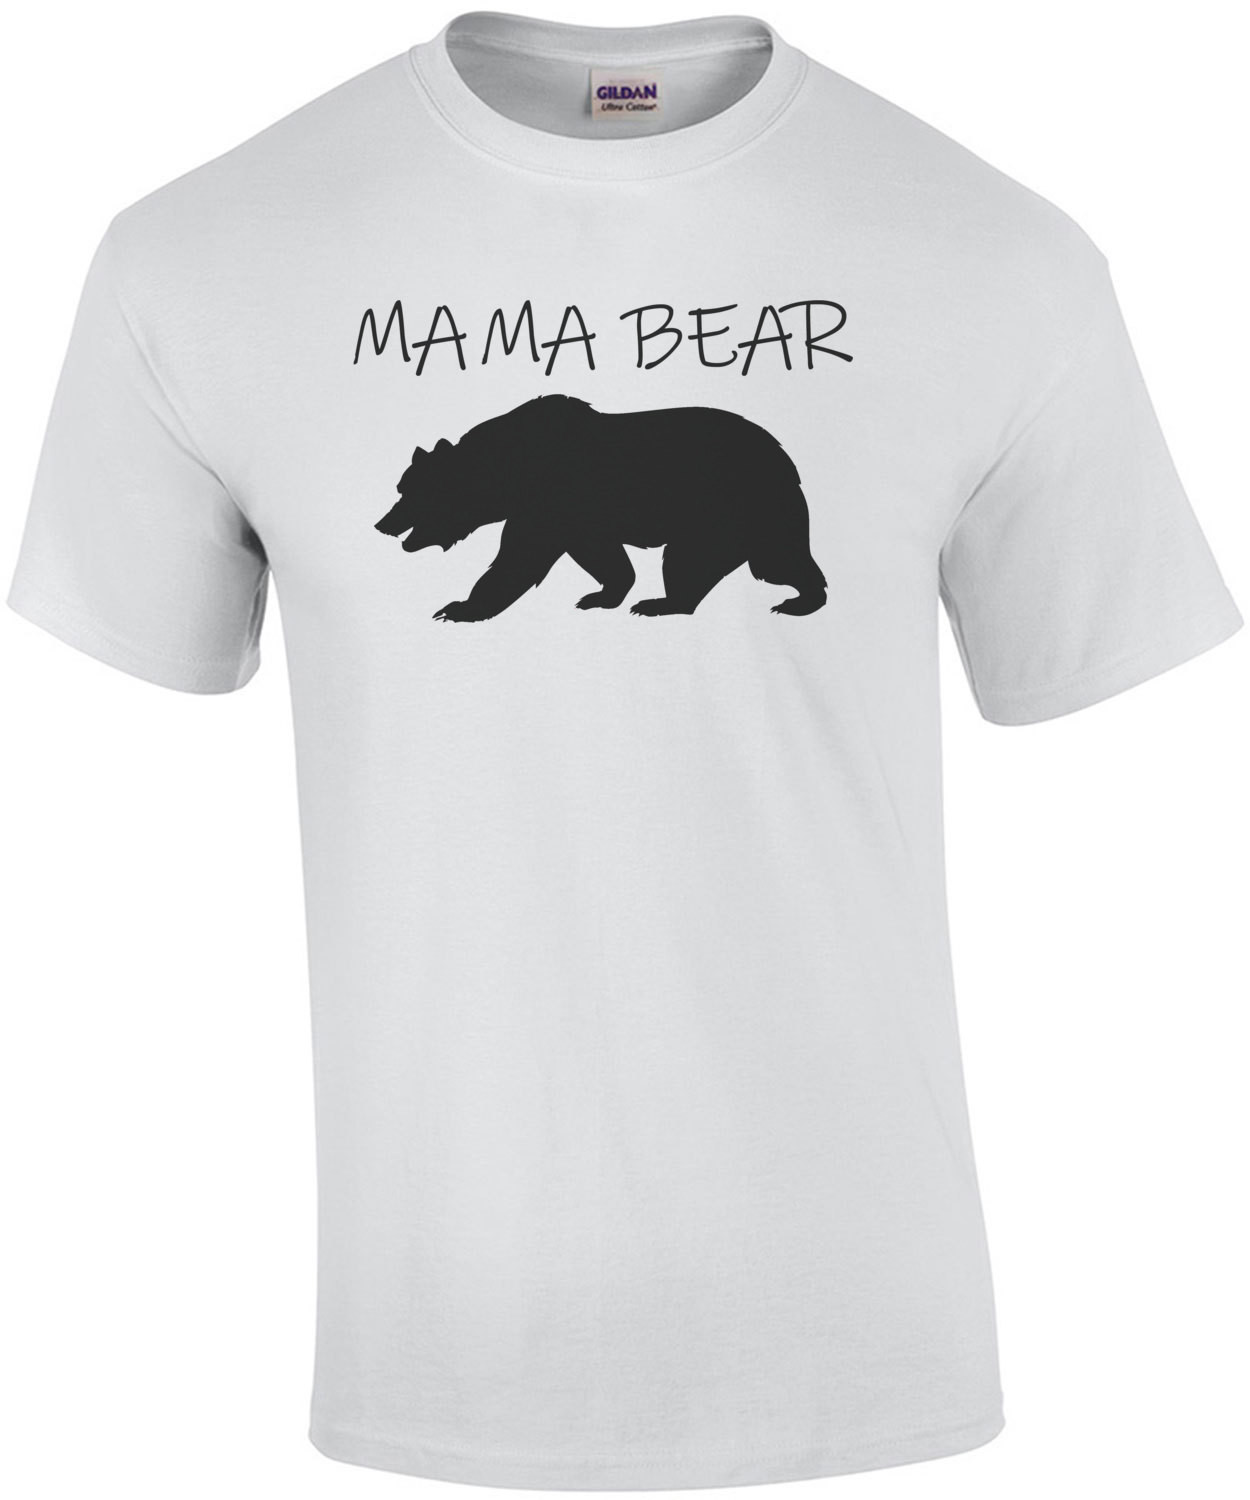 Mama Bear - Mom Mother T-Shirt